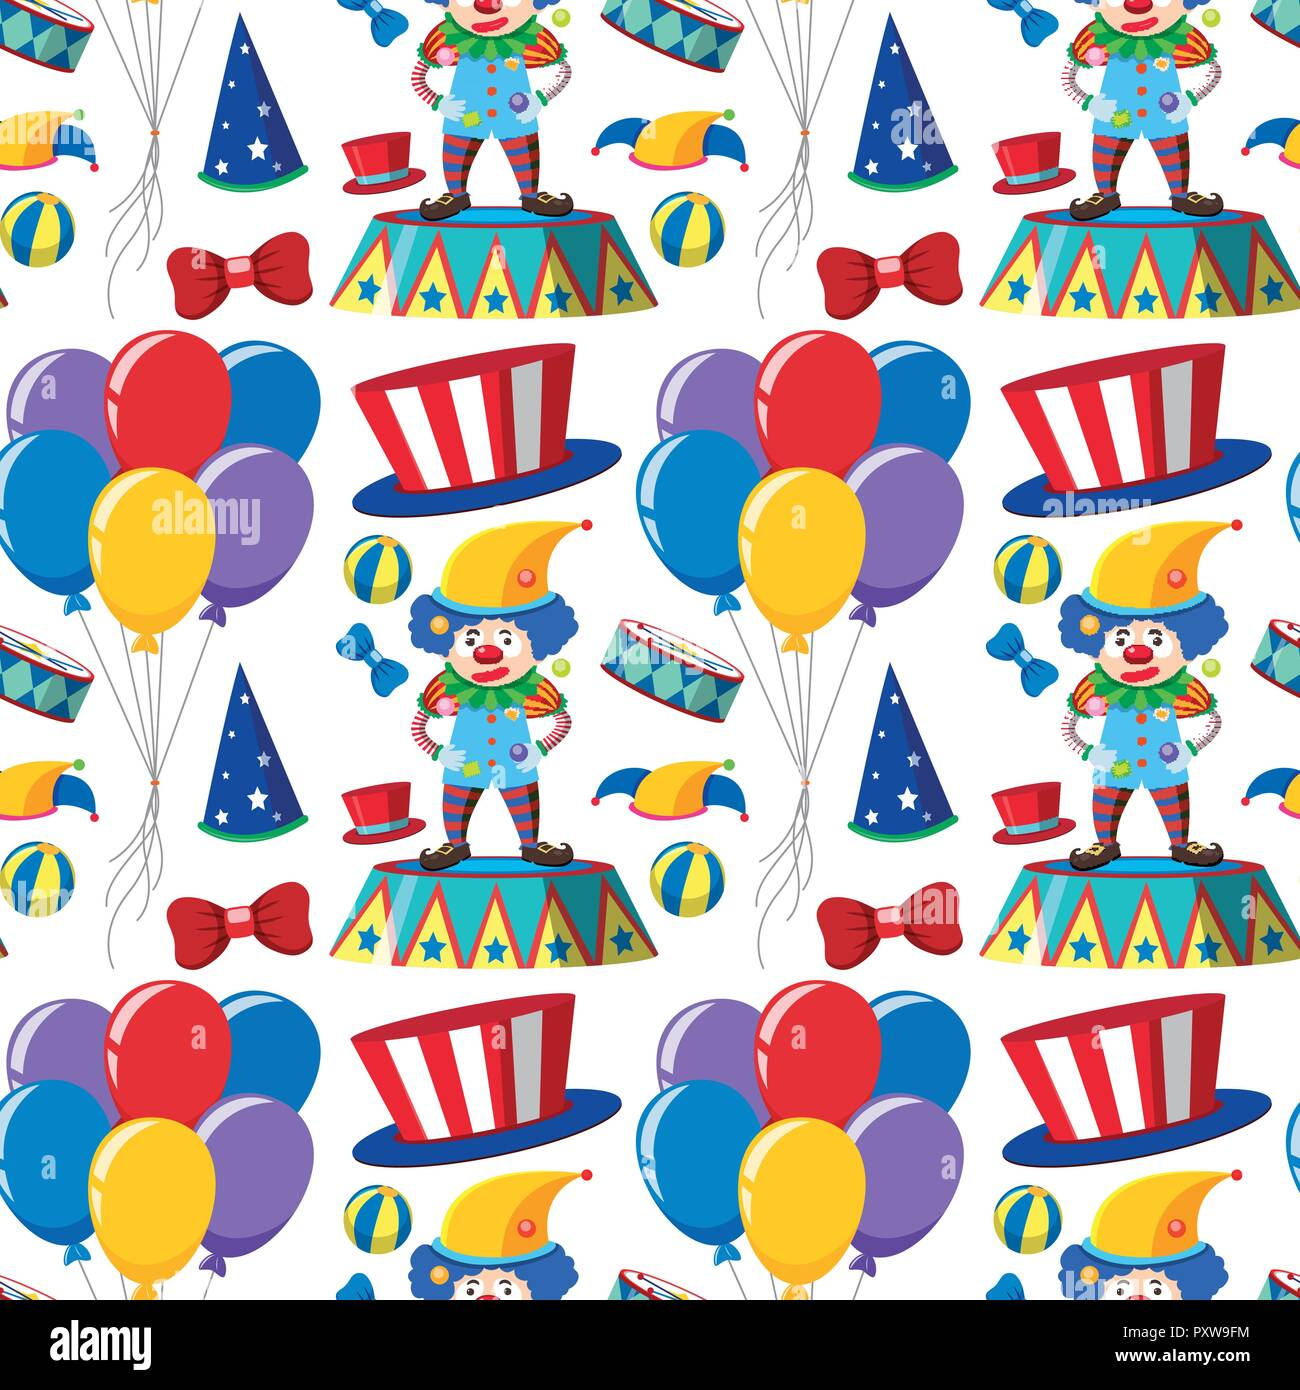 Seamless background with clowns and balloons illustration - Stock Vector